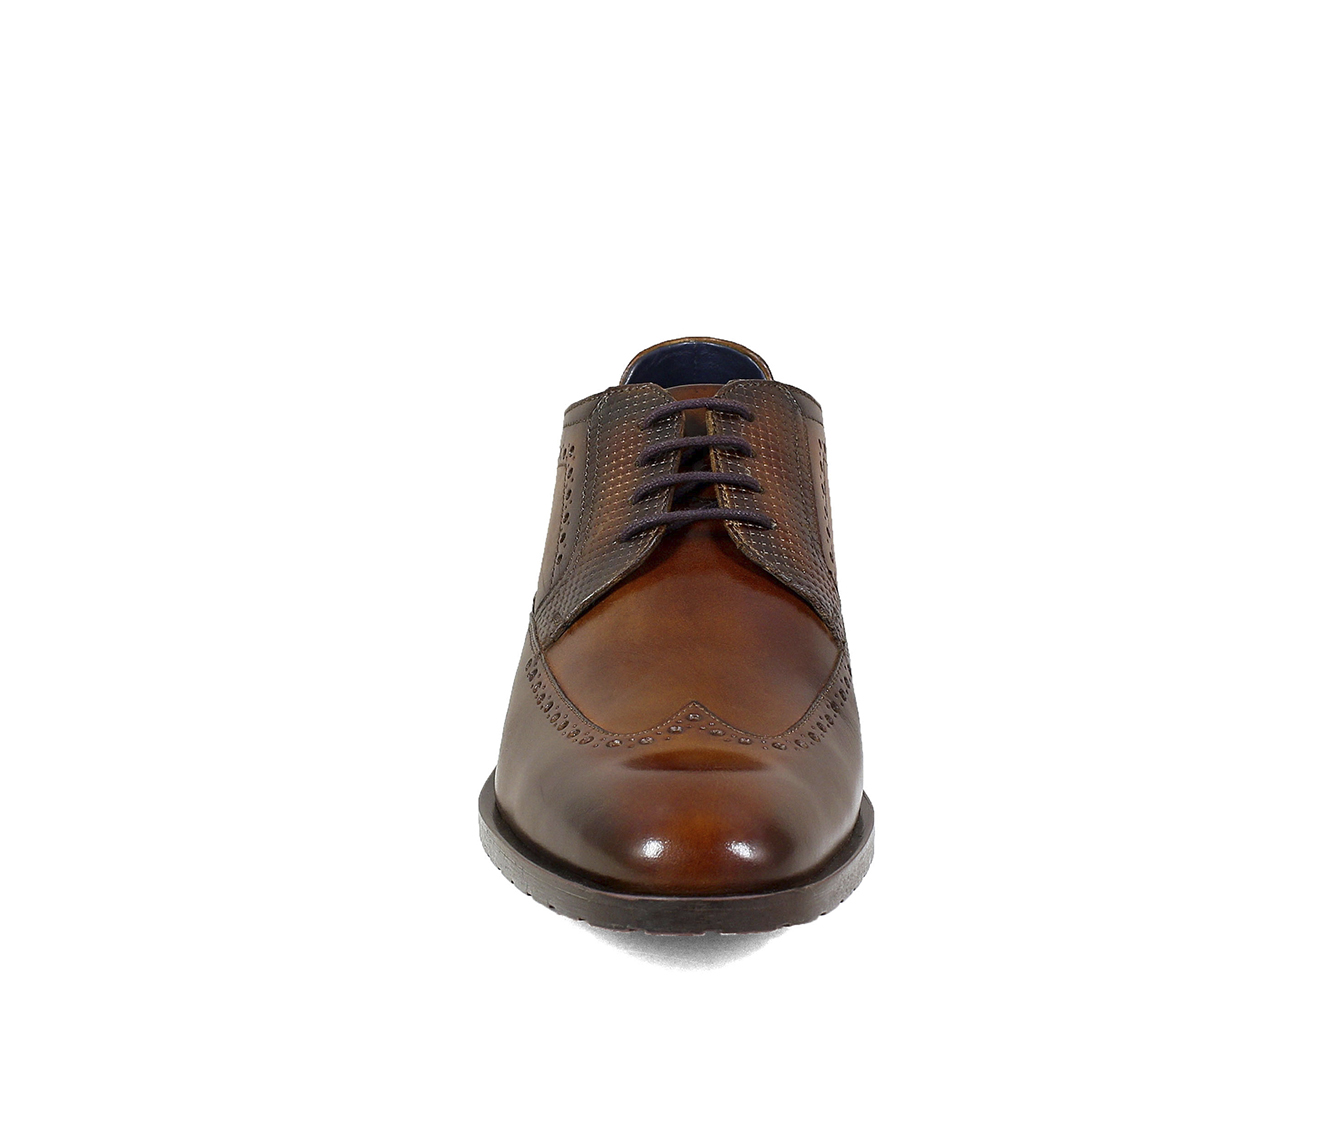 Details about  /Stacy Adams Rooney Wingtip Oxford Men/'s Shoes Dressy Tan 25323-240